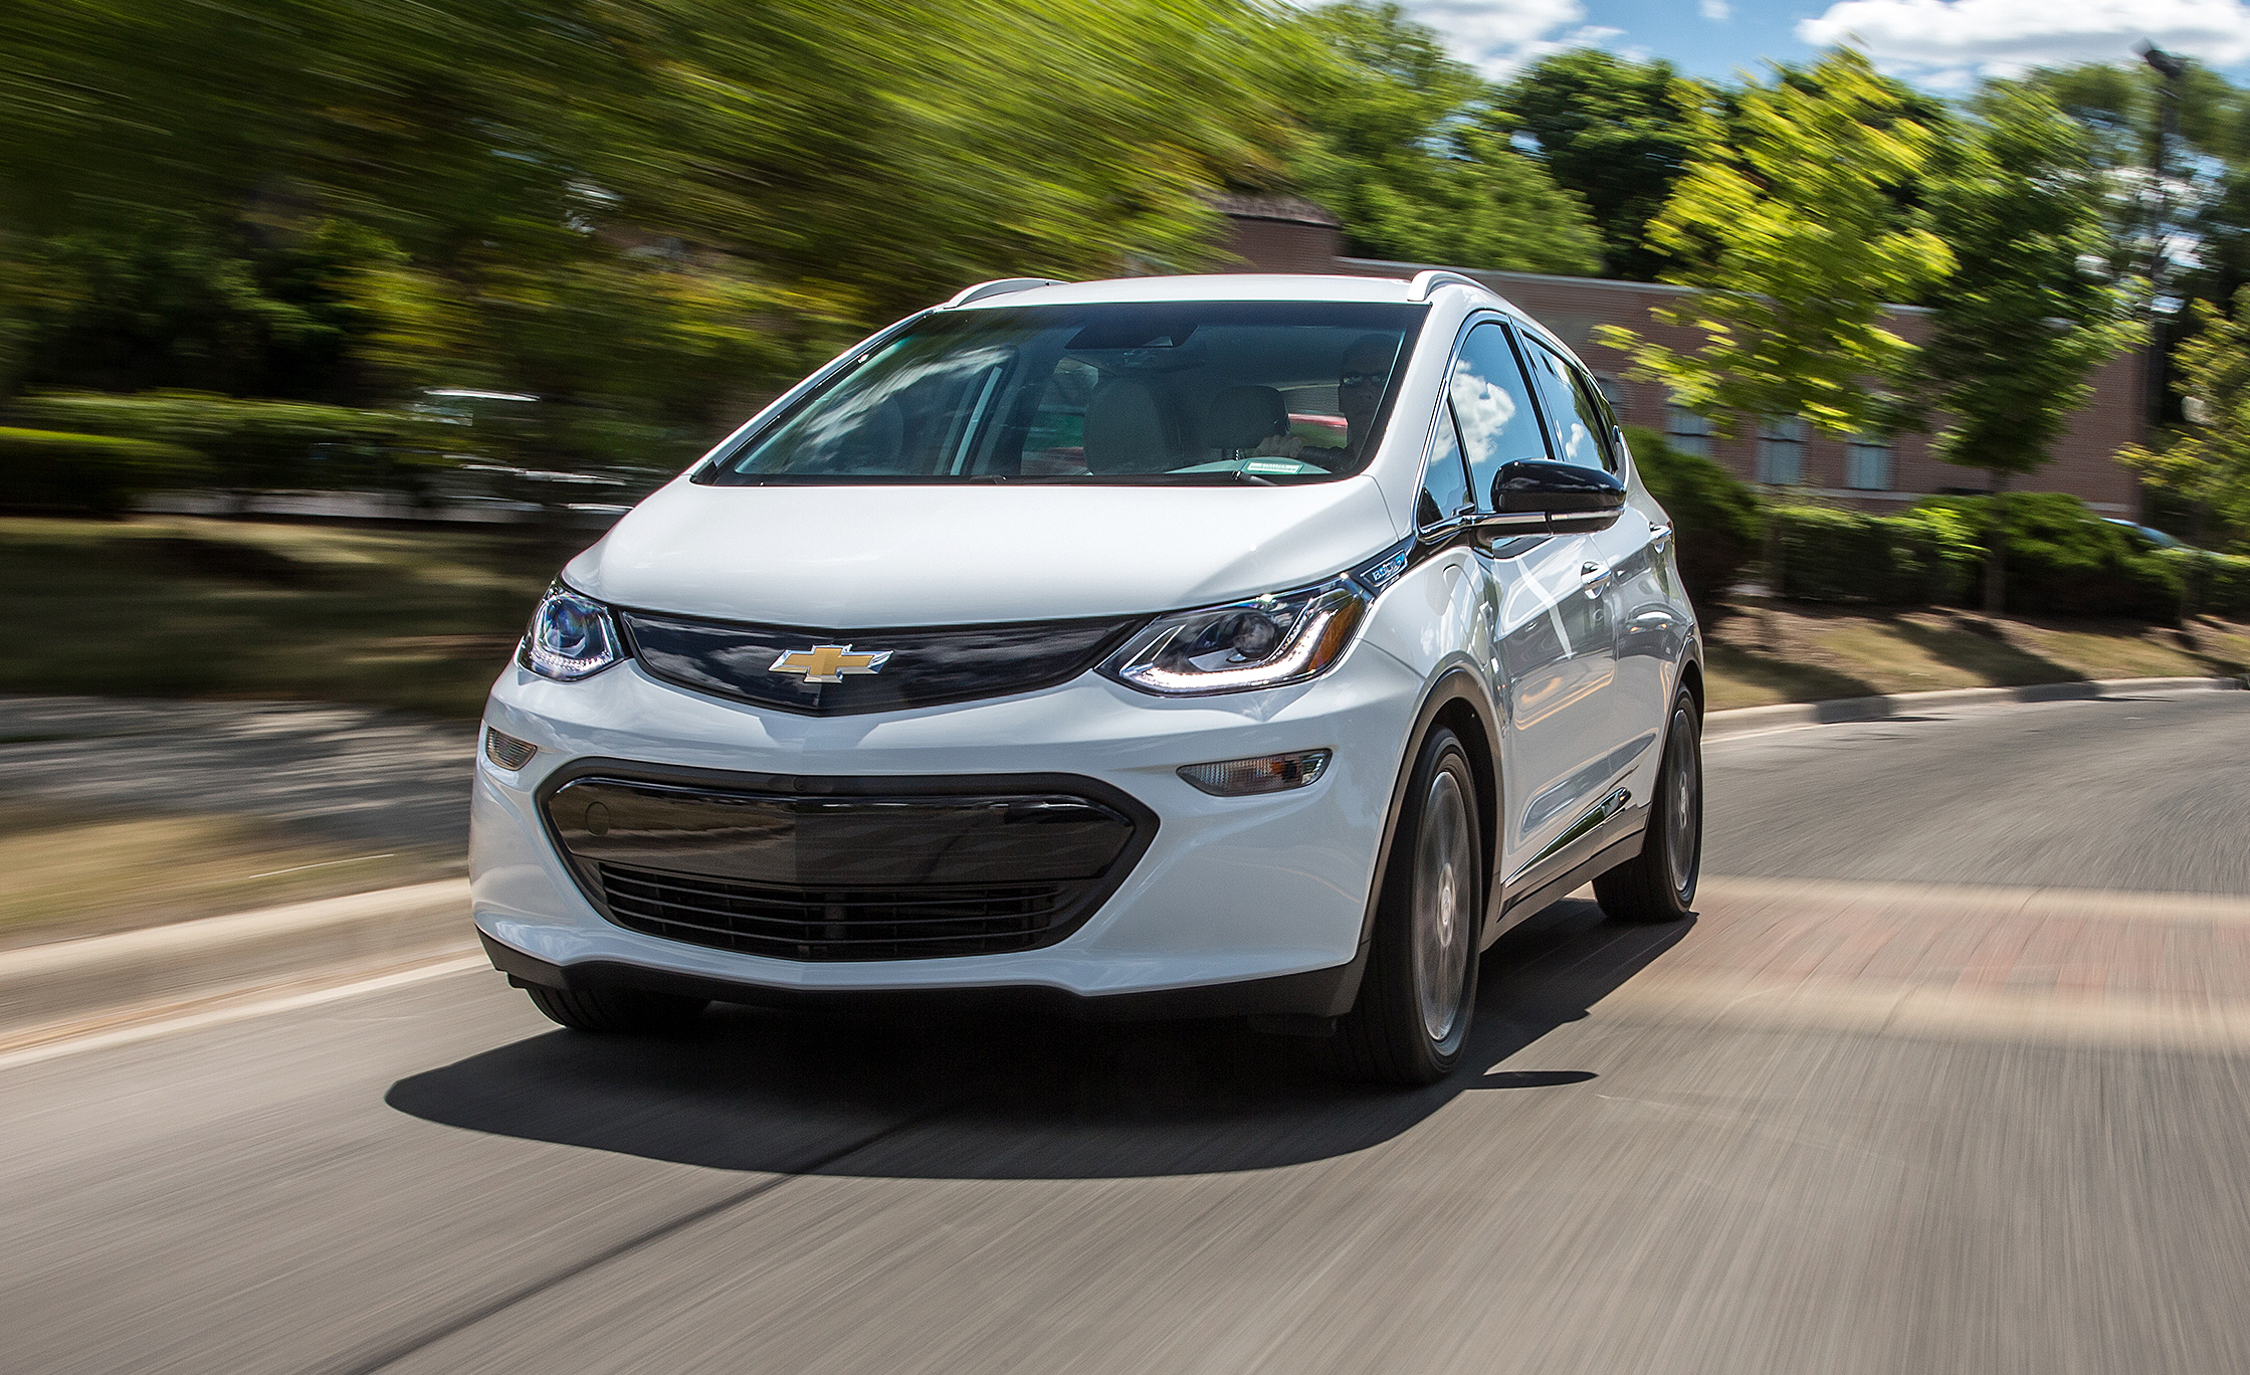 2017 Chevrolet Bolt Ev Preview (Photo 10 of 12)